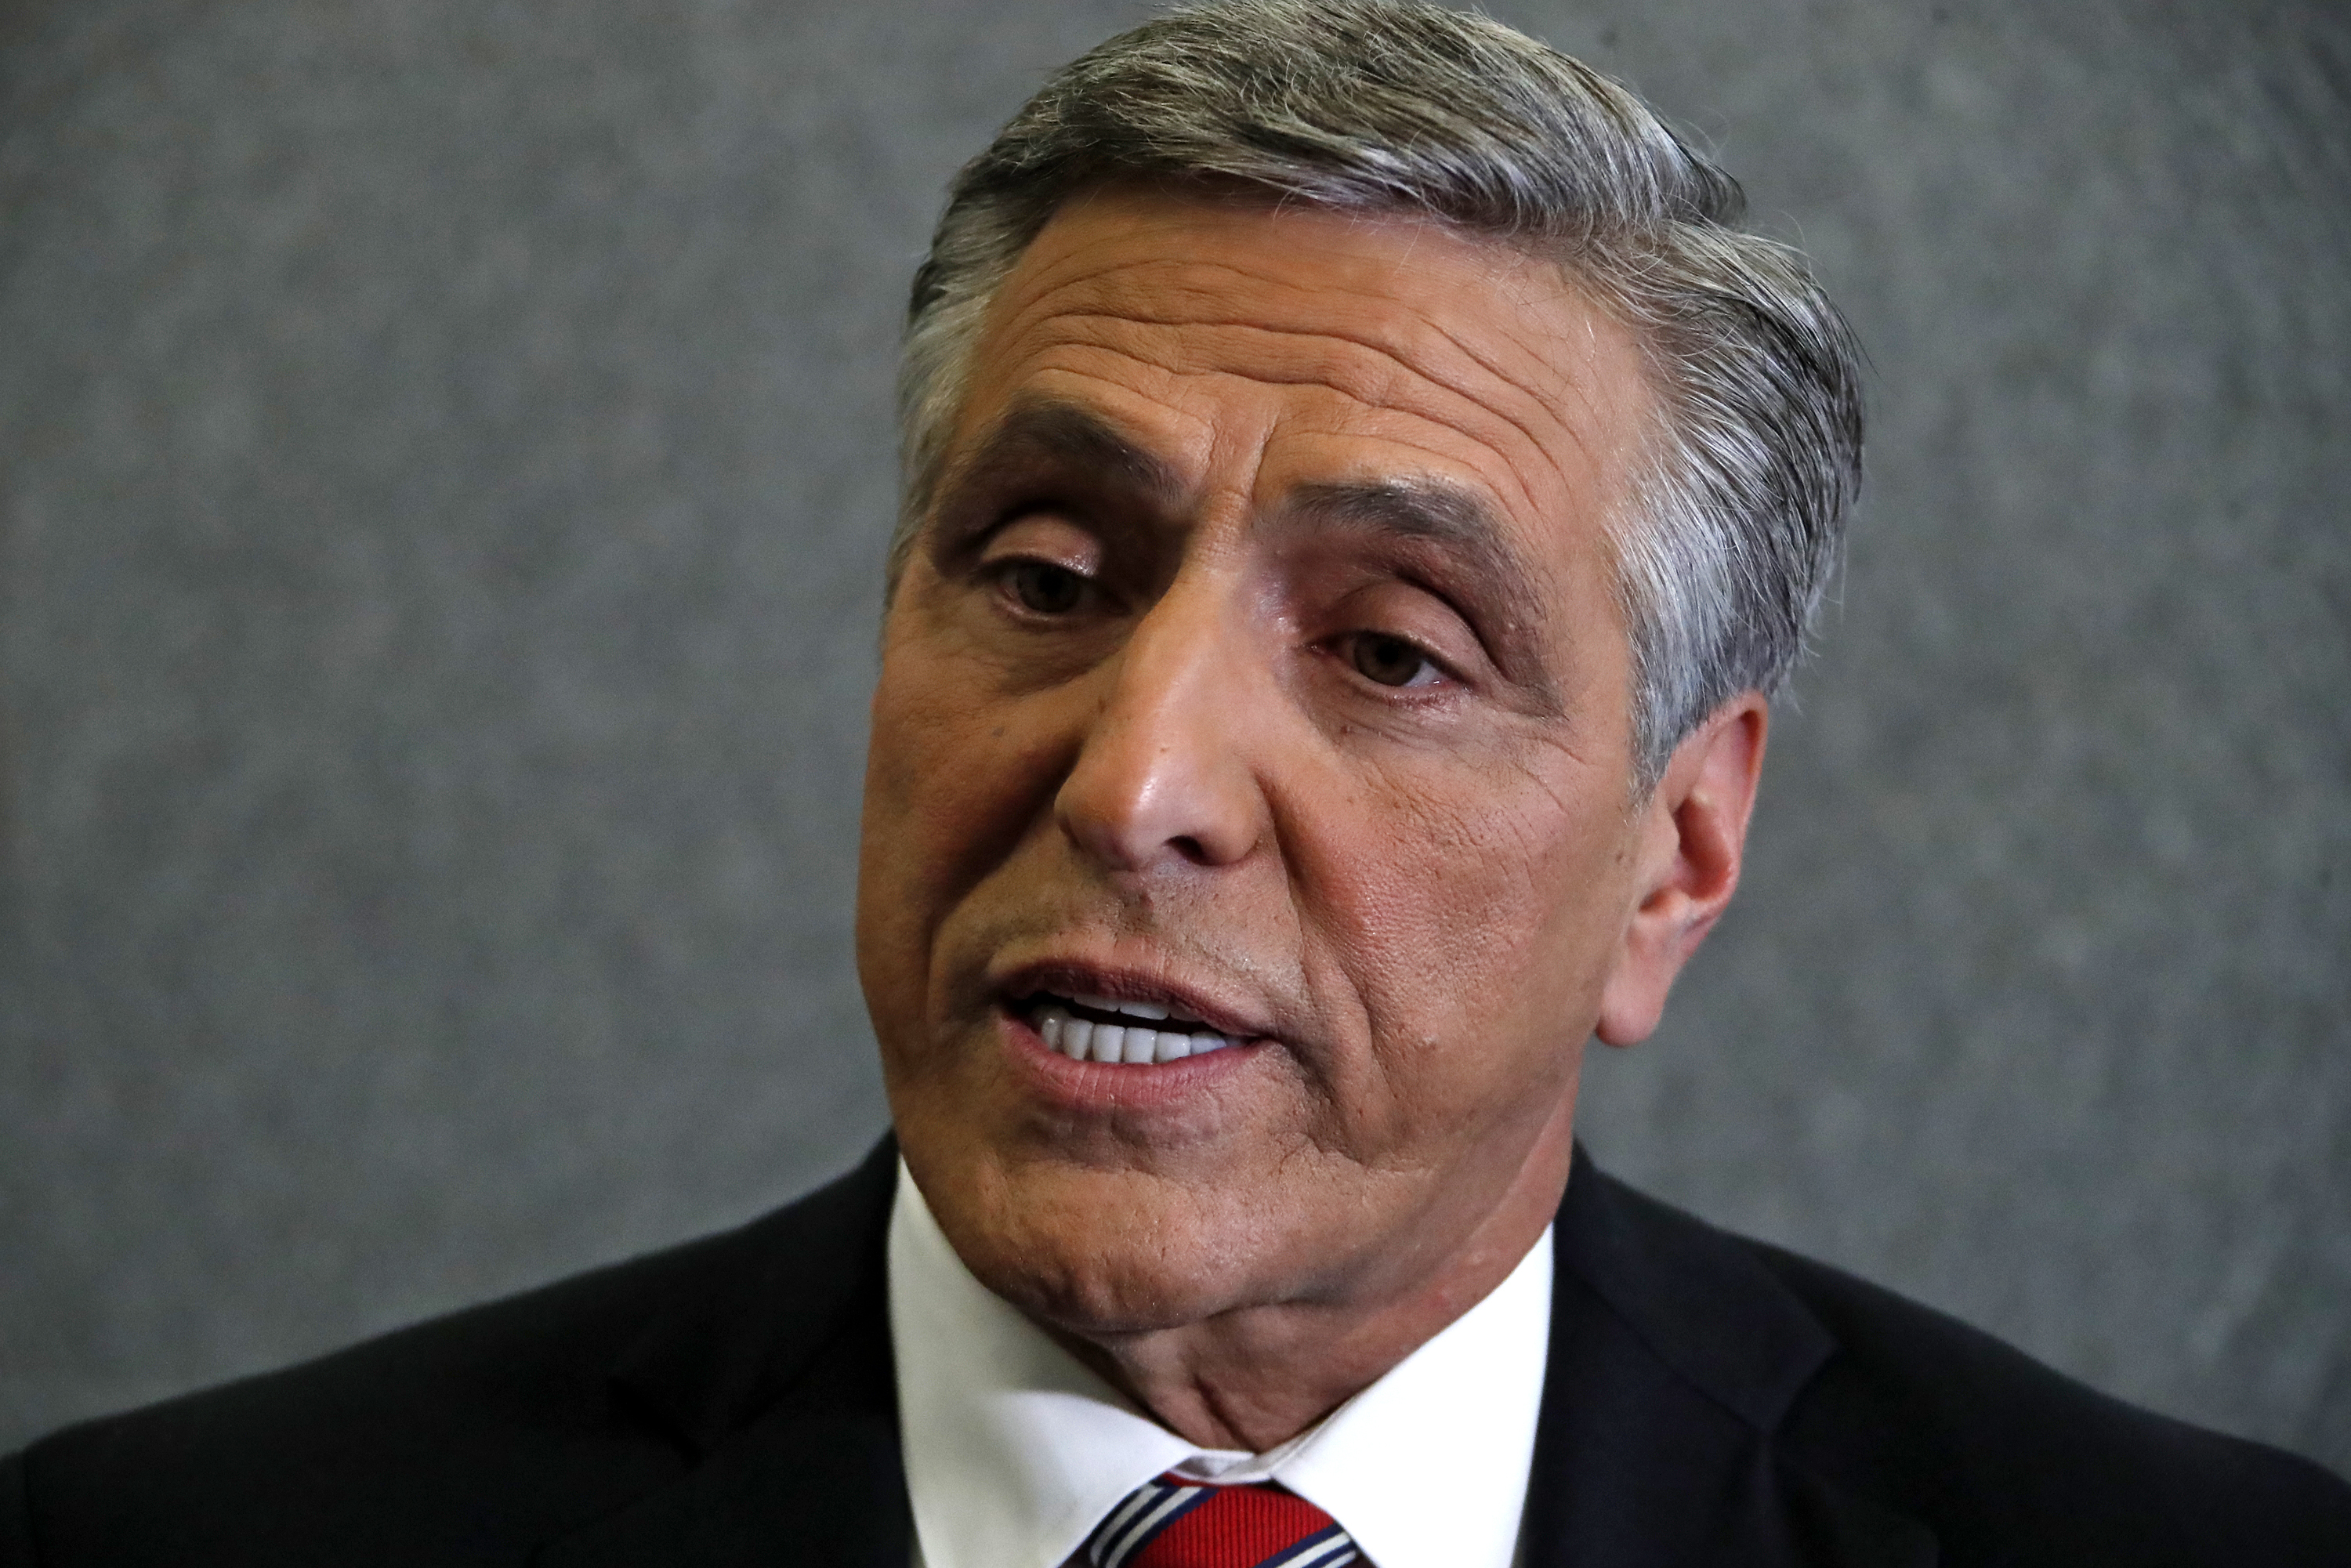 No congressional run for former Trump surrogate; Lou Barletta will focus on consulting firm